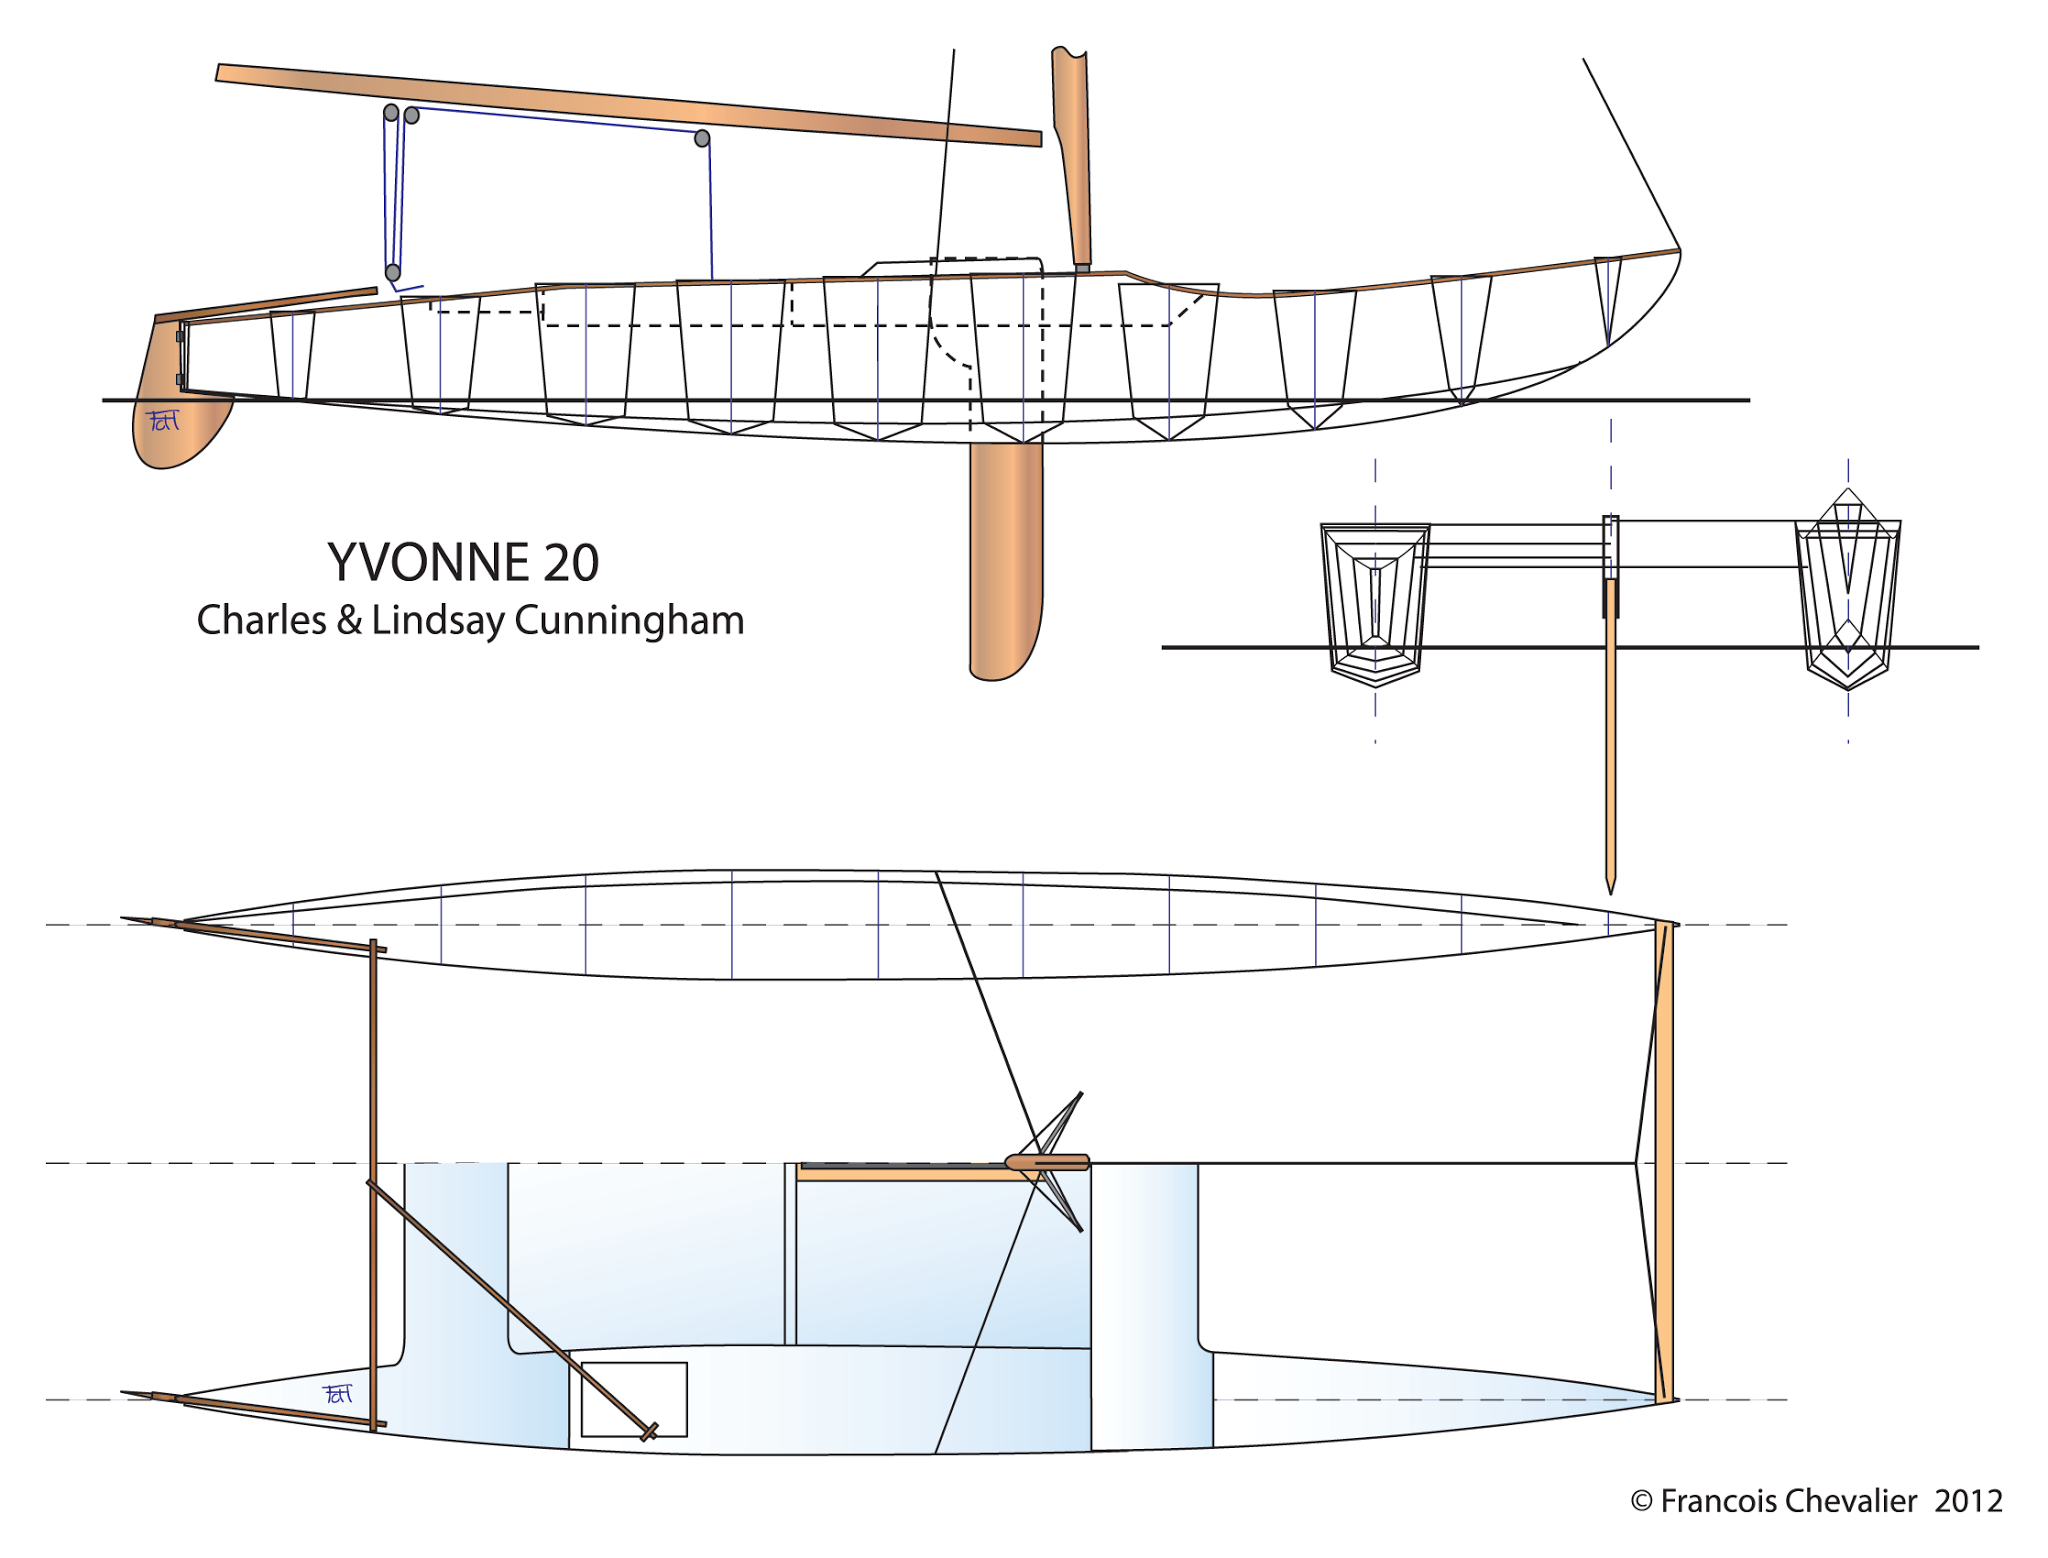 Amateur asymmetric spinnaker plans